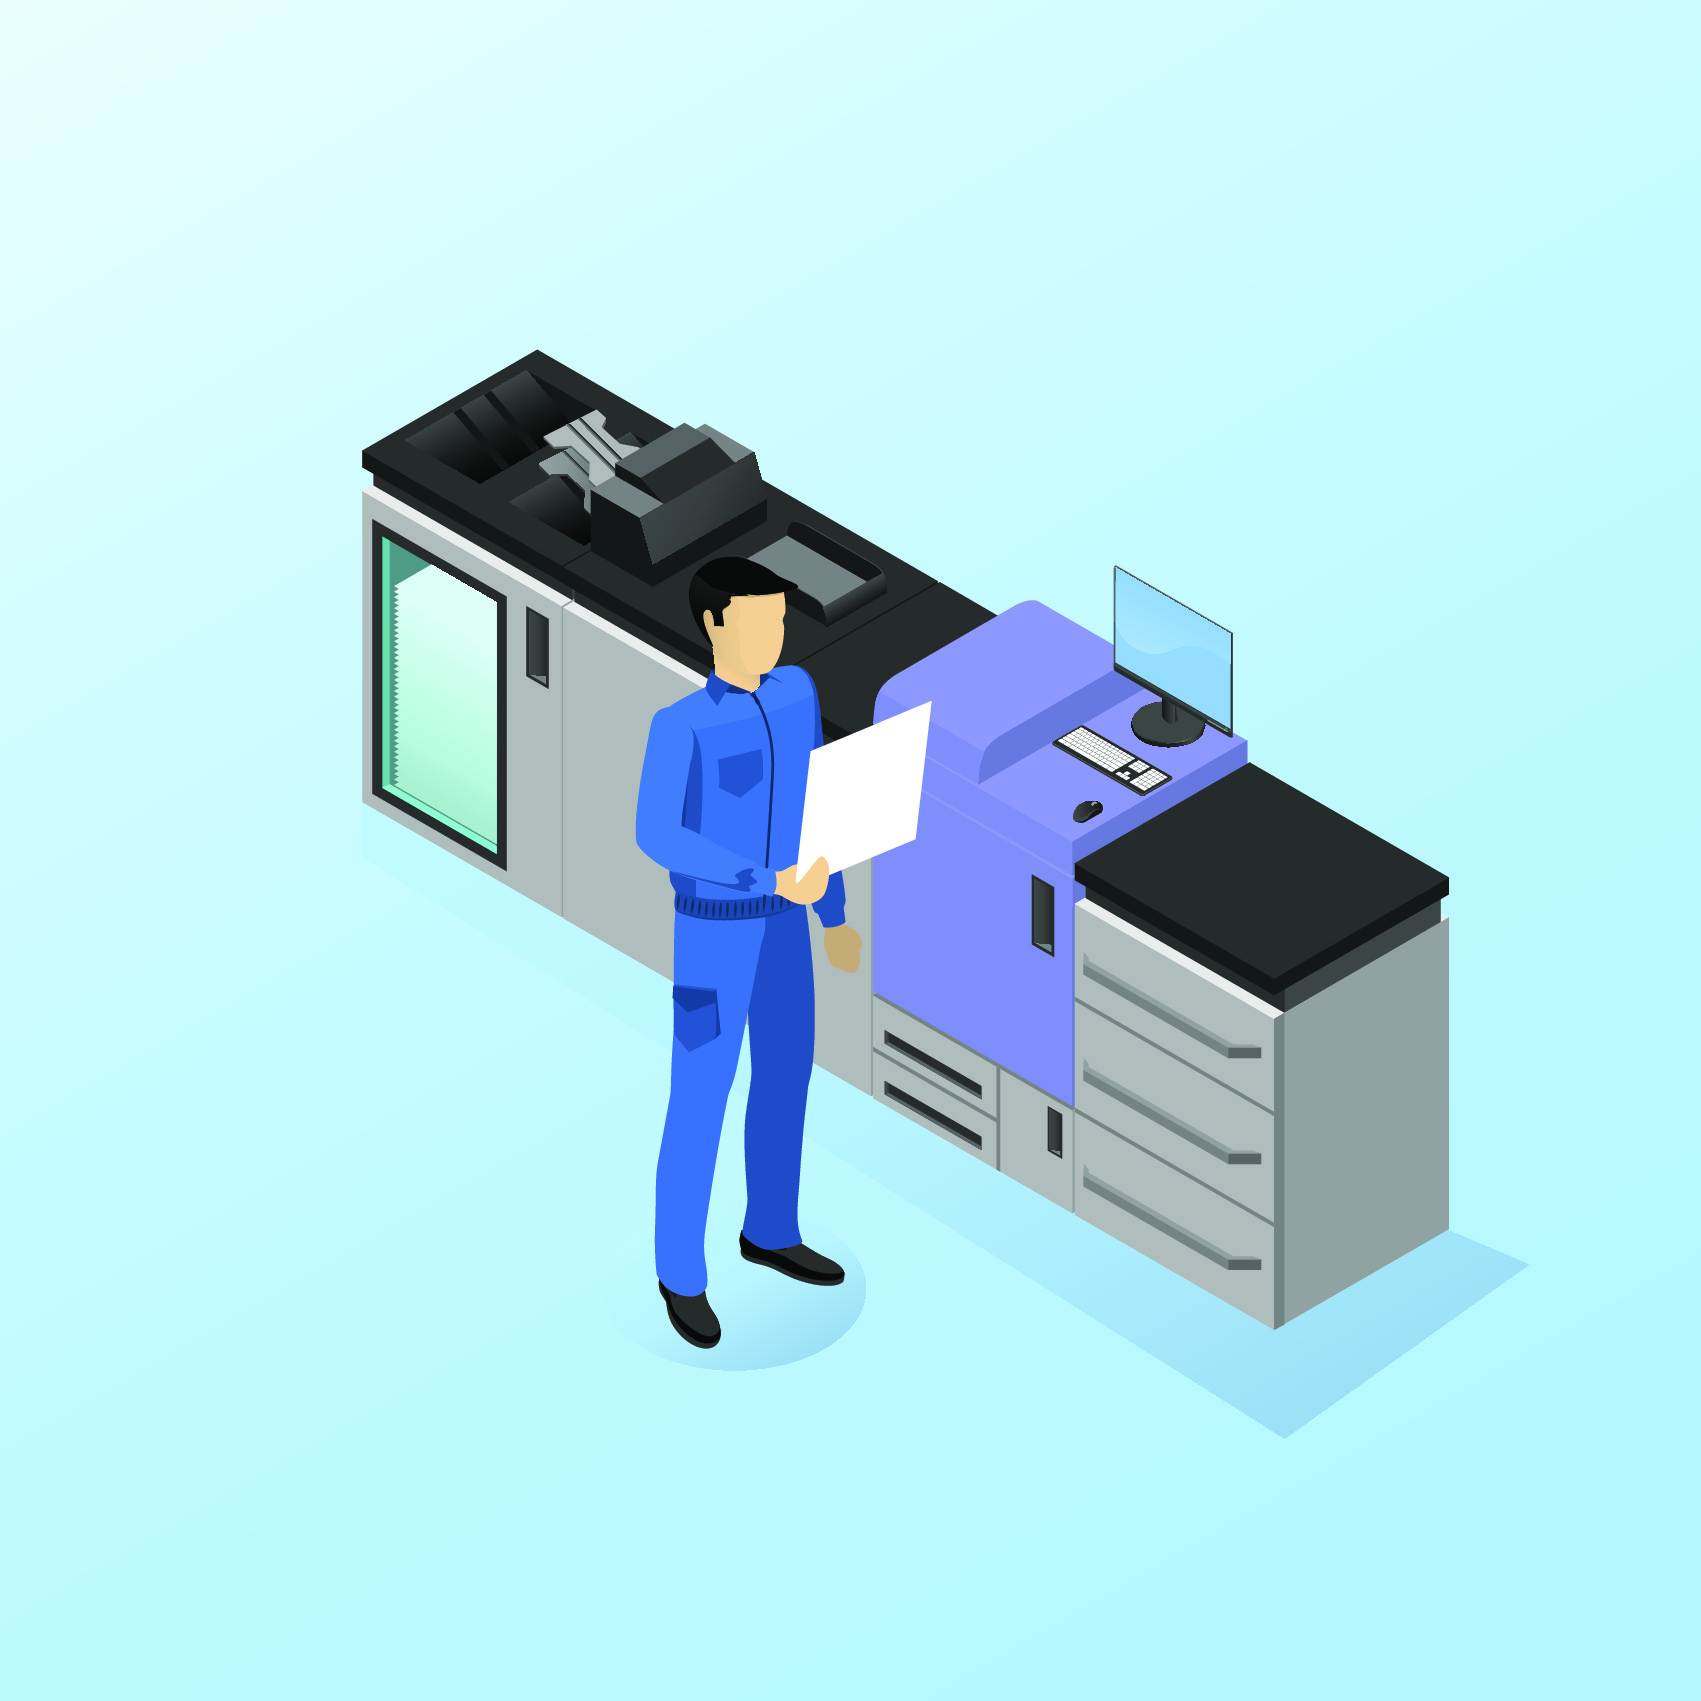 Buying Used Copiers? - We Buy All Models Of Wide Format Copiers And Export Them Internationally To Our BuyersAll Copiers Are Quality Checked By Our Professional Team And Documented Prior To Loading. Notes Include Model Number, Meter, Parts, Scanners or Controllers If Applicable, And Damages